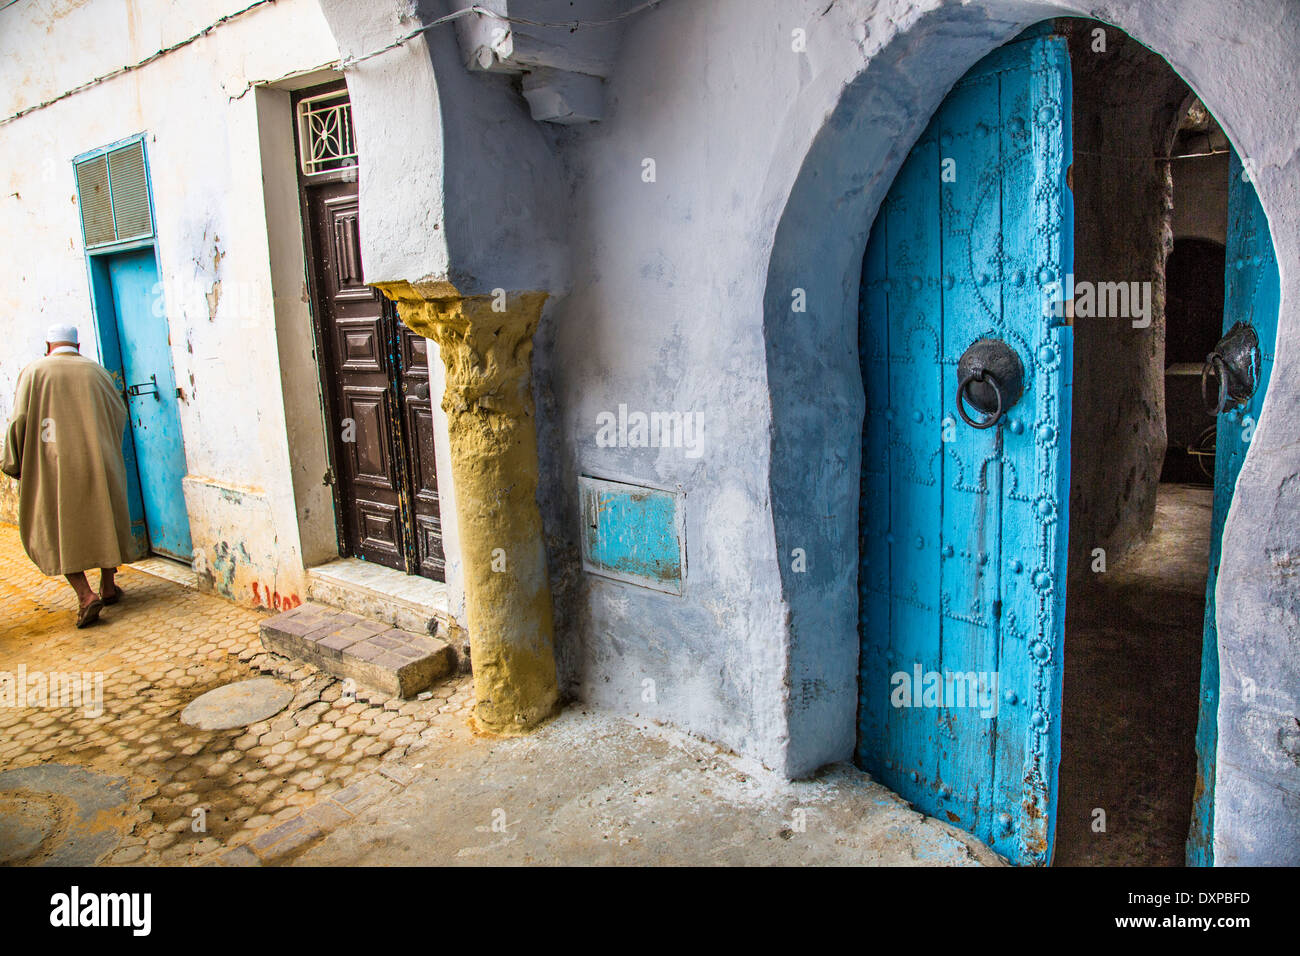 Vieille ville, Kairouan, Tunisie Photo Stock